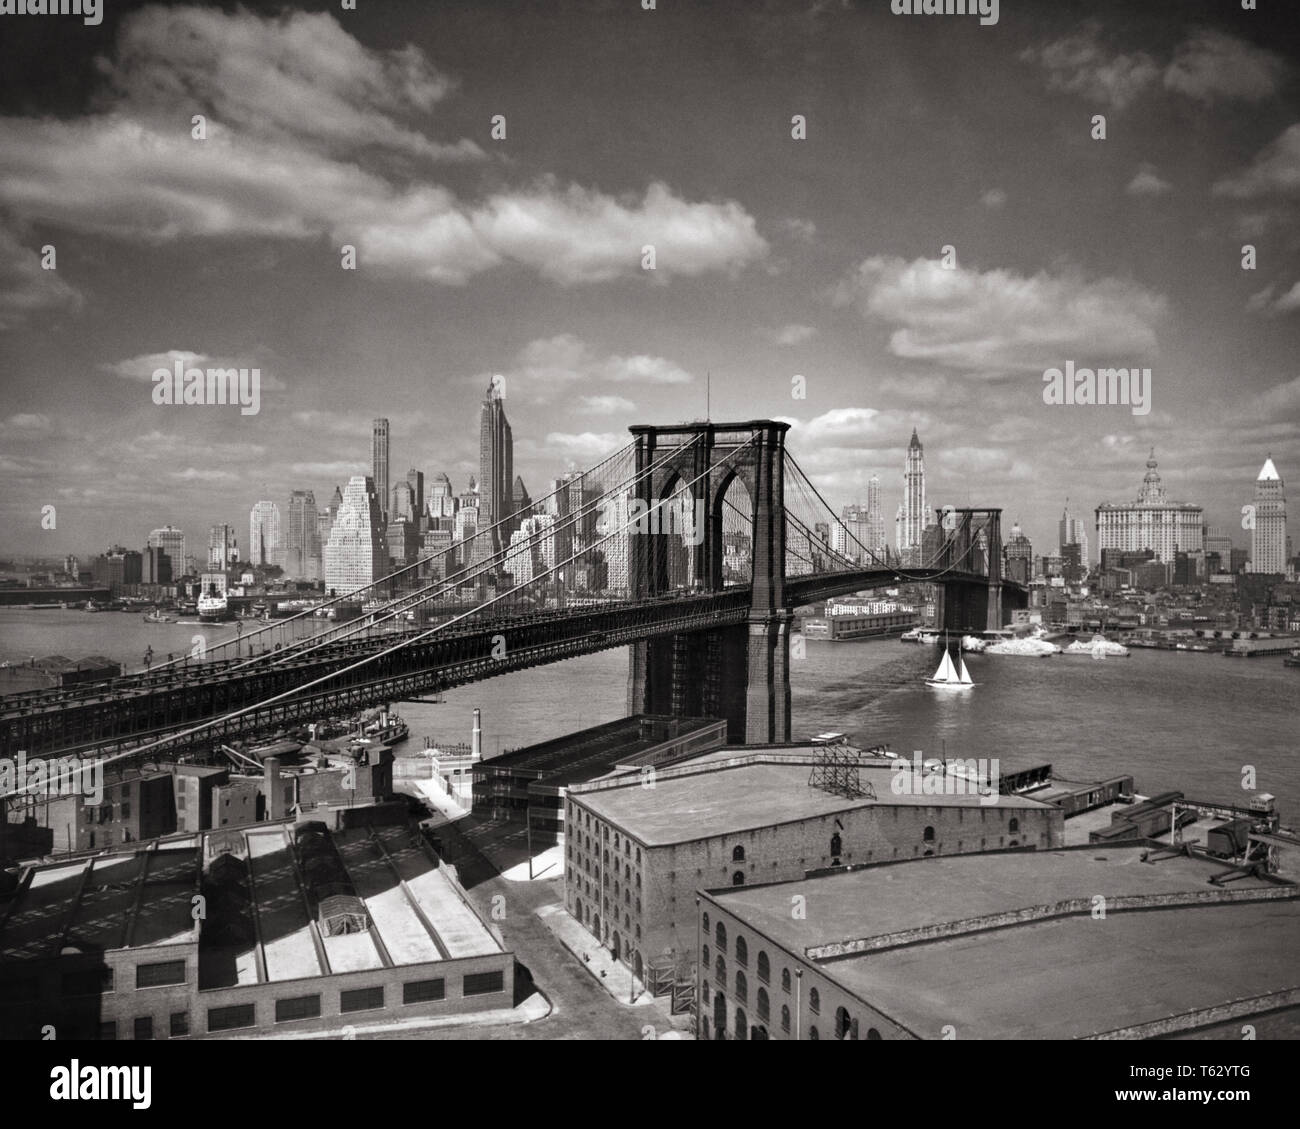 1930s NEW YORK CITY BROOKLYN BRIDGE AND THE SKYLINE OF LOWER MANHATTAN ACROSS THE EAST RIVER - q36336 CPC001 HARS BLACK AND WHITE BRIDGES BROOKLYN BRIDGE EAST RIVER FINANCIAL DISTRICT LOWER MANHATTAN OLD FASHIONED SKYSCRAPERS SUSPENSION - Stock Image